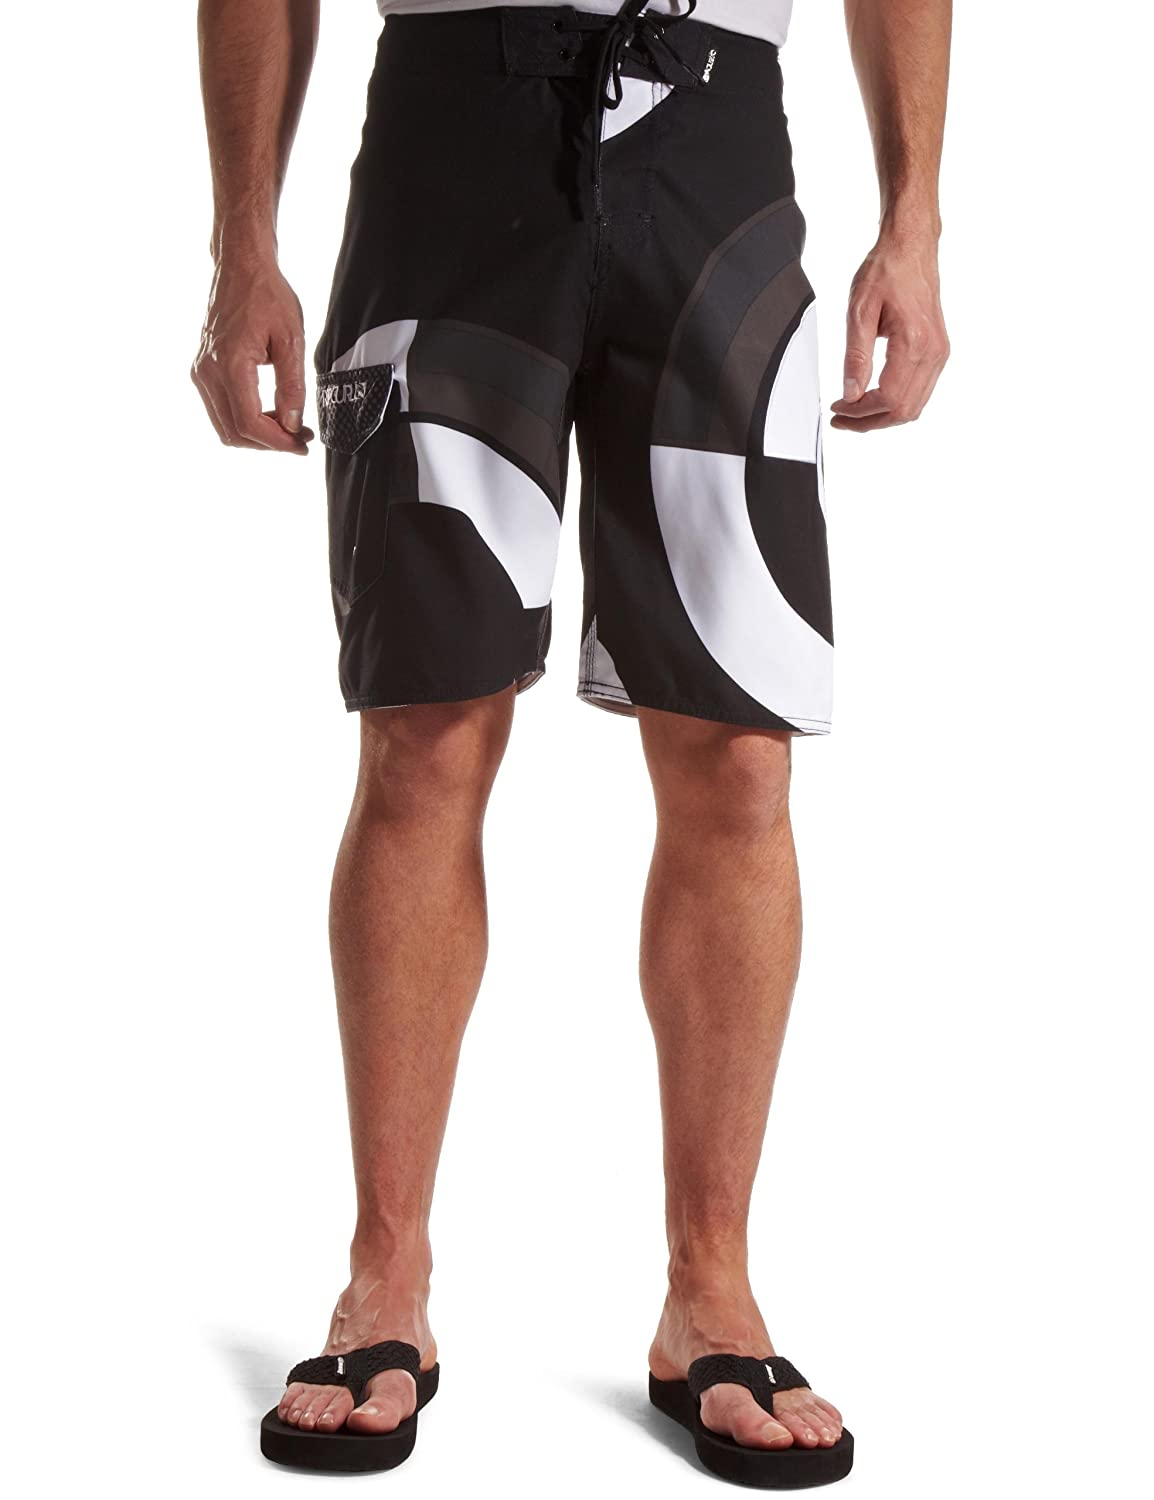 Ripcurl Circle Work Boardshort Men's Swim Shorts